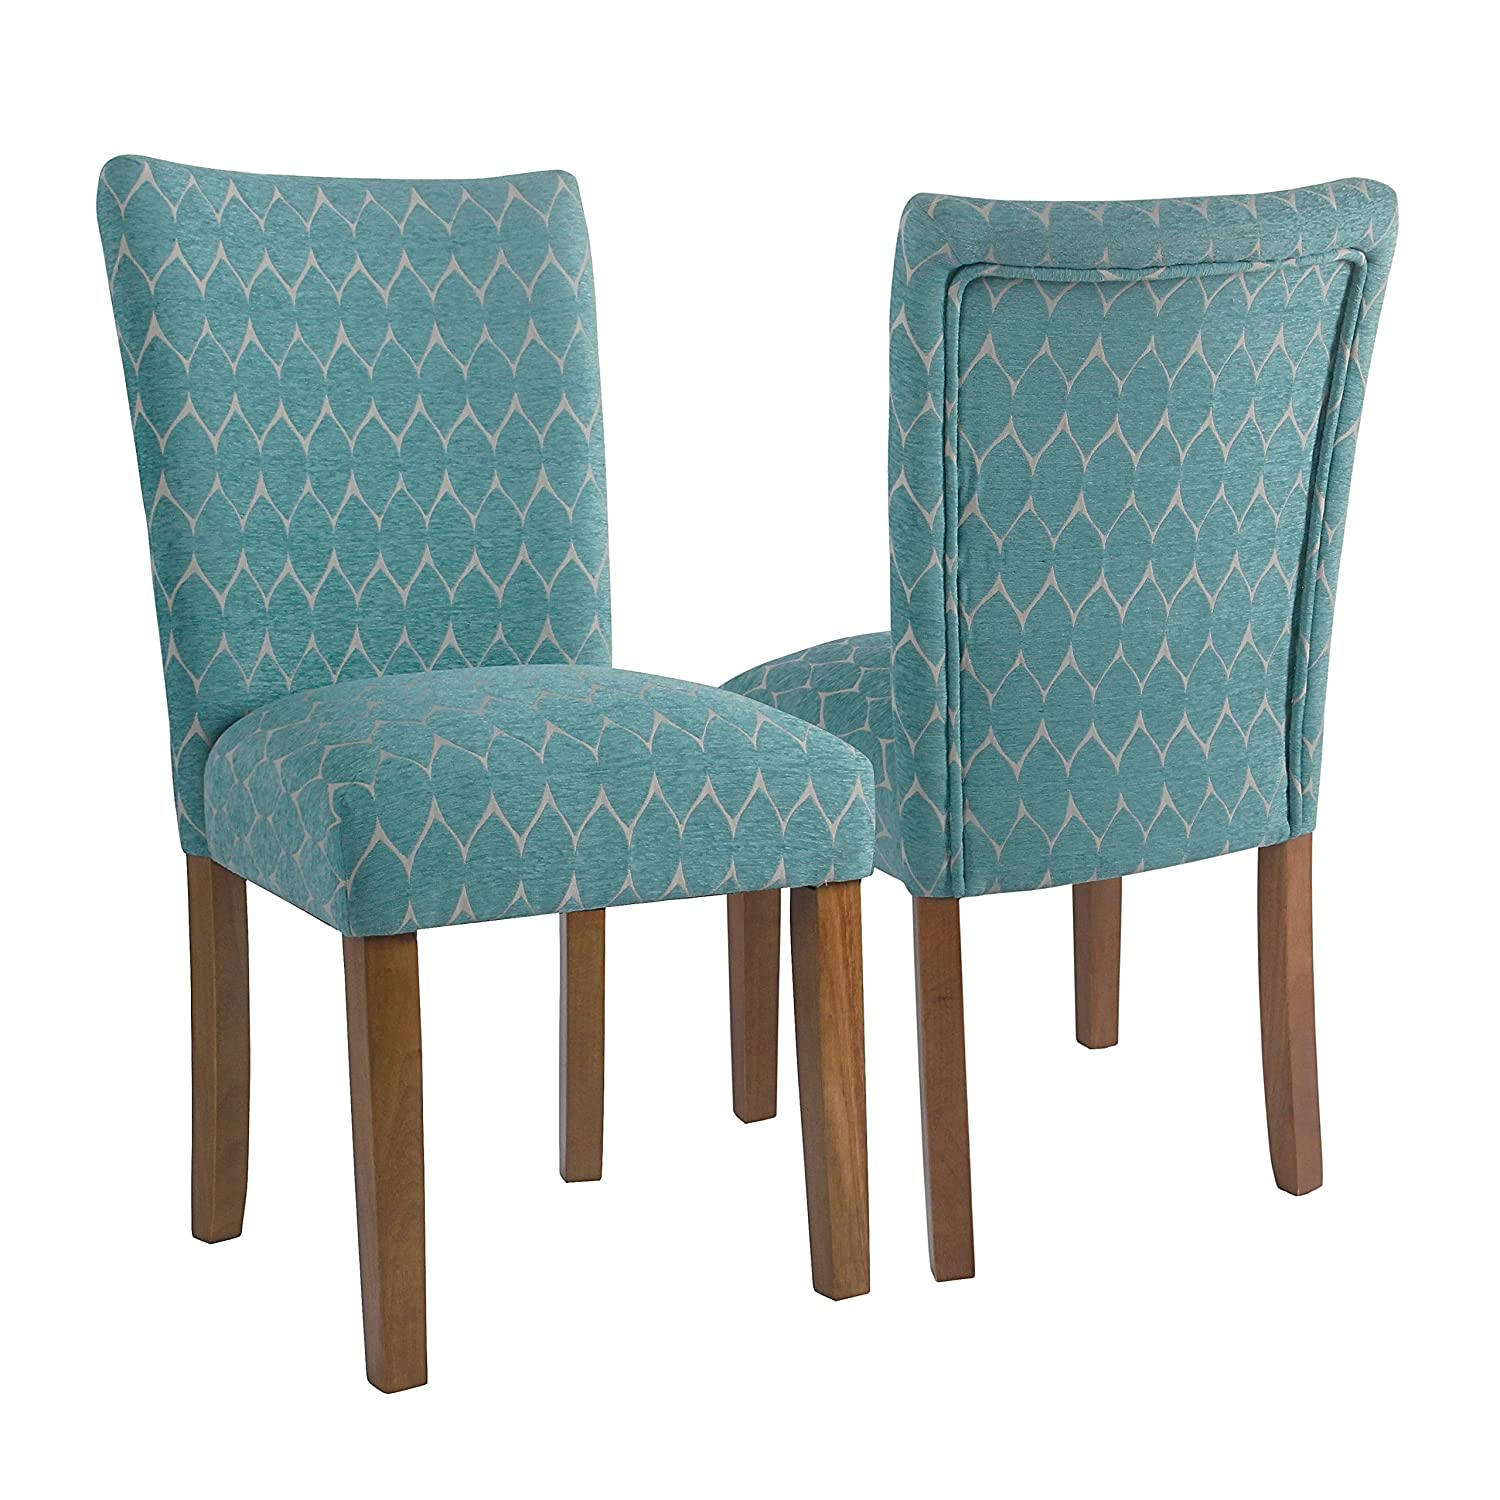 Amazon.com - HomePop Textured Parsons Chair - Set of 2 Teal Oak ...